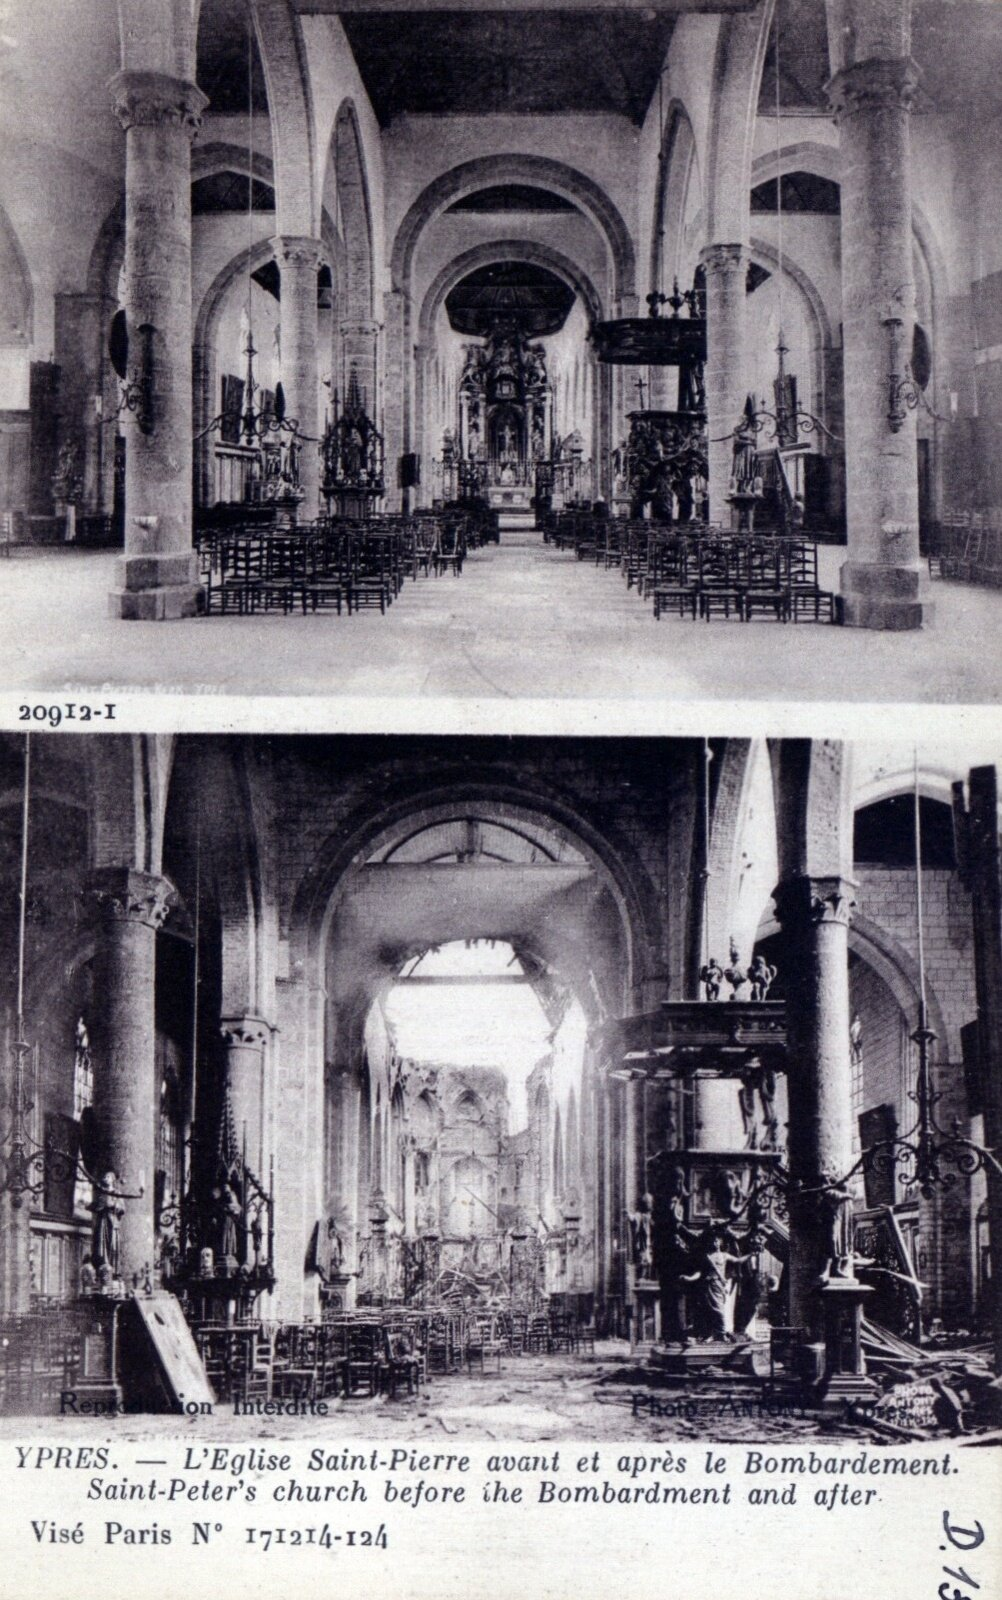 Ypres: Saint-Peter's church before the bombardment and after, 1914, Antony d'Ypres, Ghent University Library, CC BY-SA